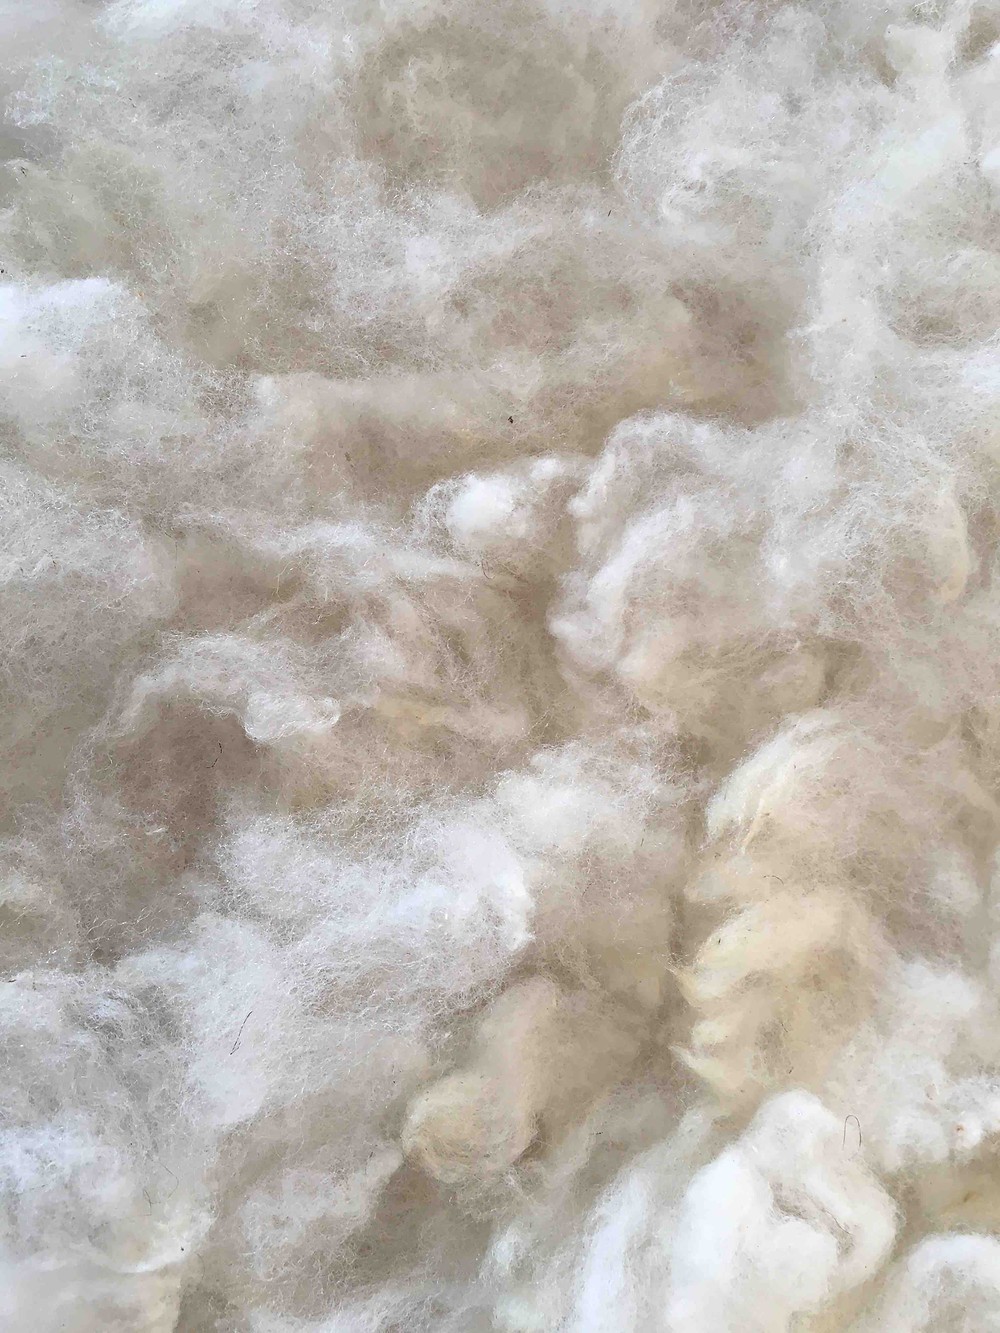 Charollais are a French meat breed but owing to their Leicester Longwool heritage, have surprisingly fine wool.